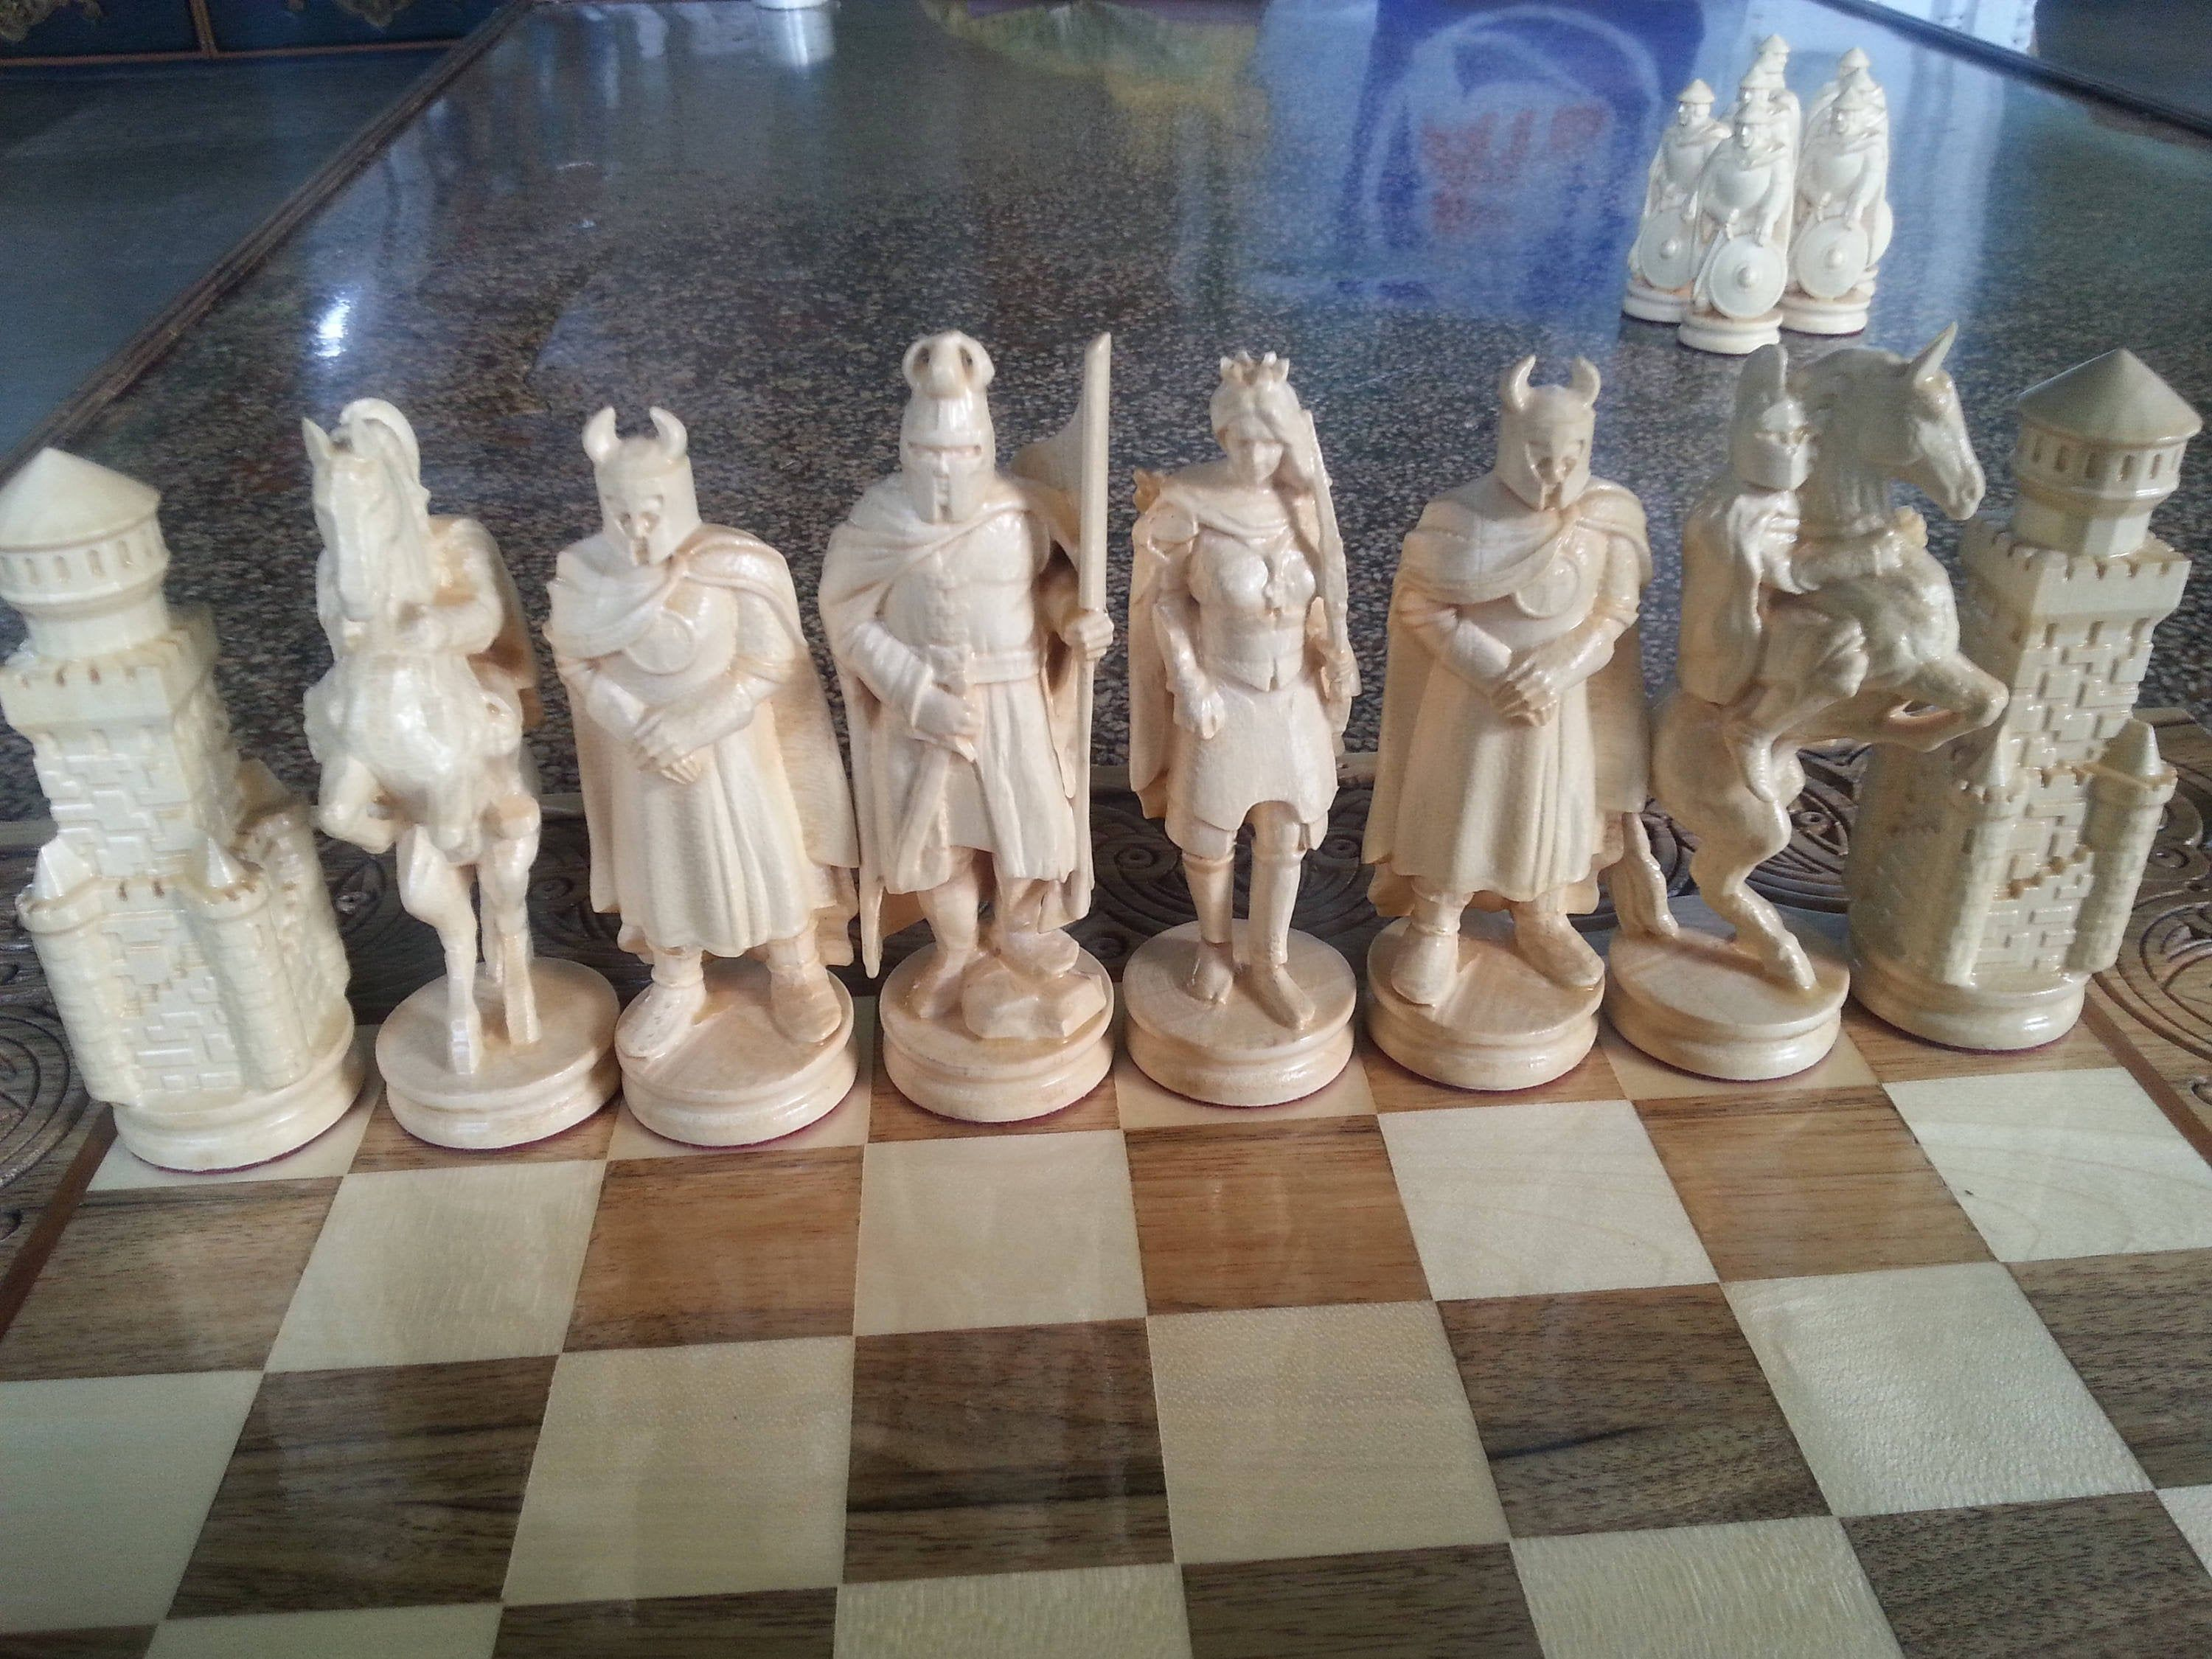 Wooden Chess Pieces Knights Exclusive Handmade Big Etsy In 2020 Chess Pieces Wooden Chess Pieces Wooden Chess